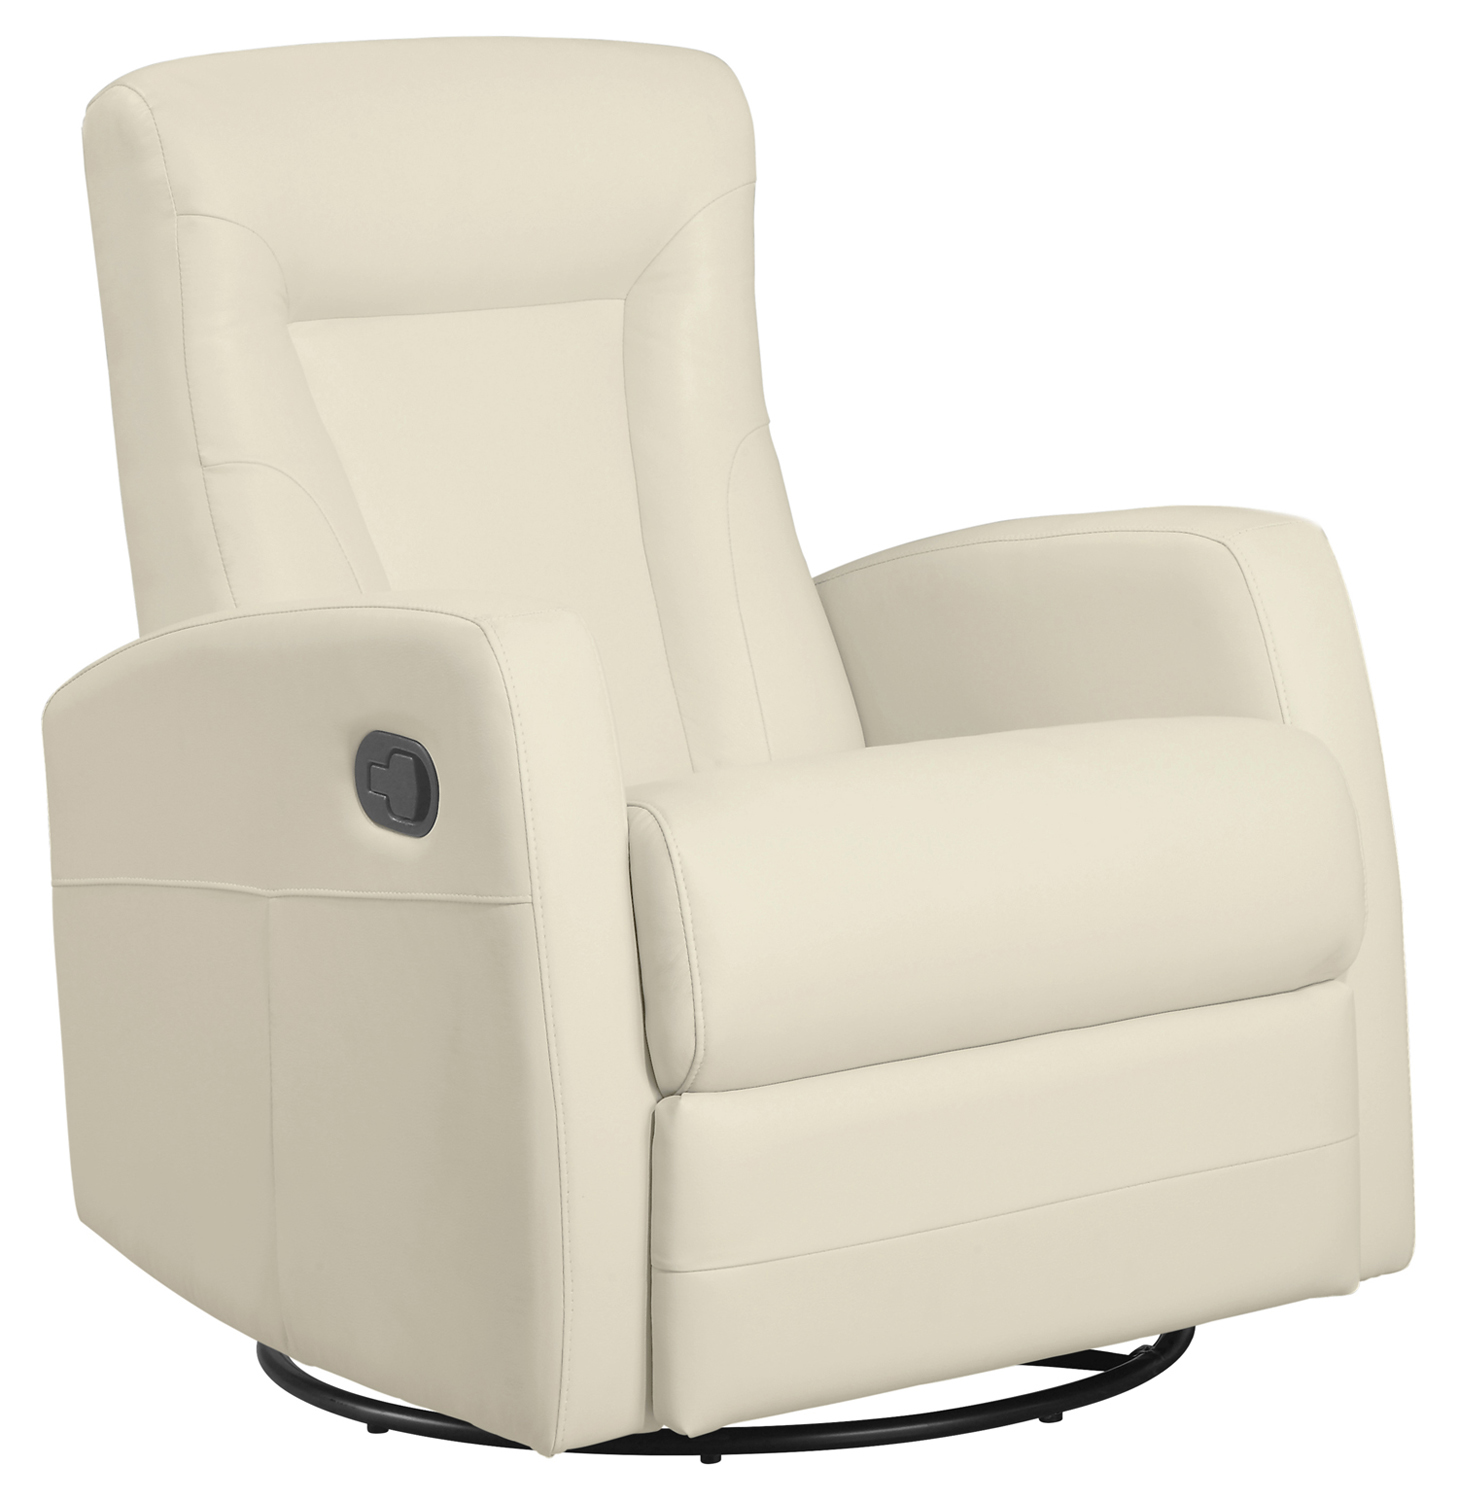 Recliner - Swivel Rocker / Ivory Bonded Leather Fabric